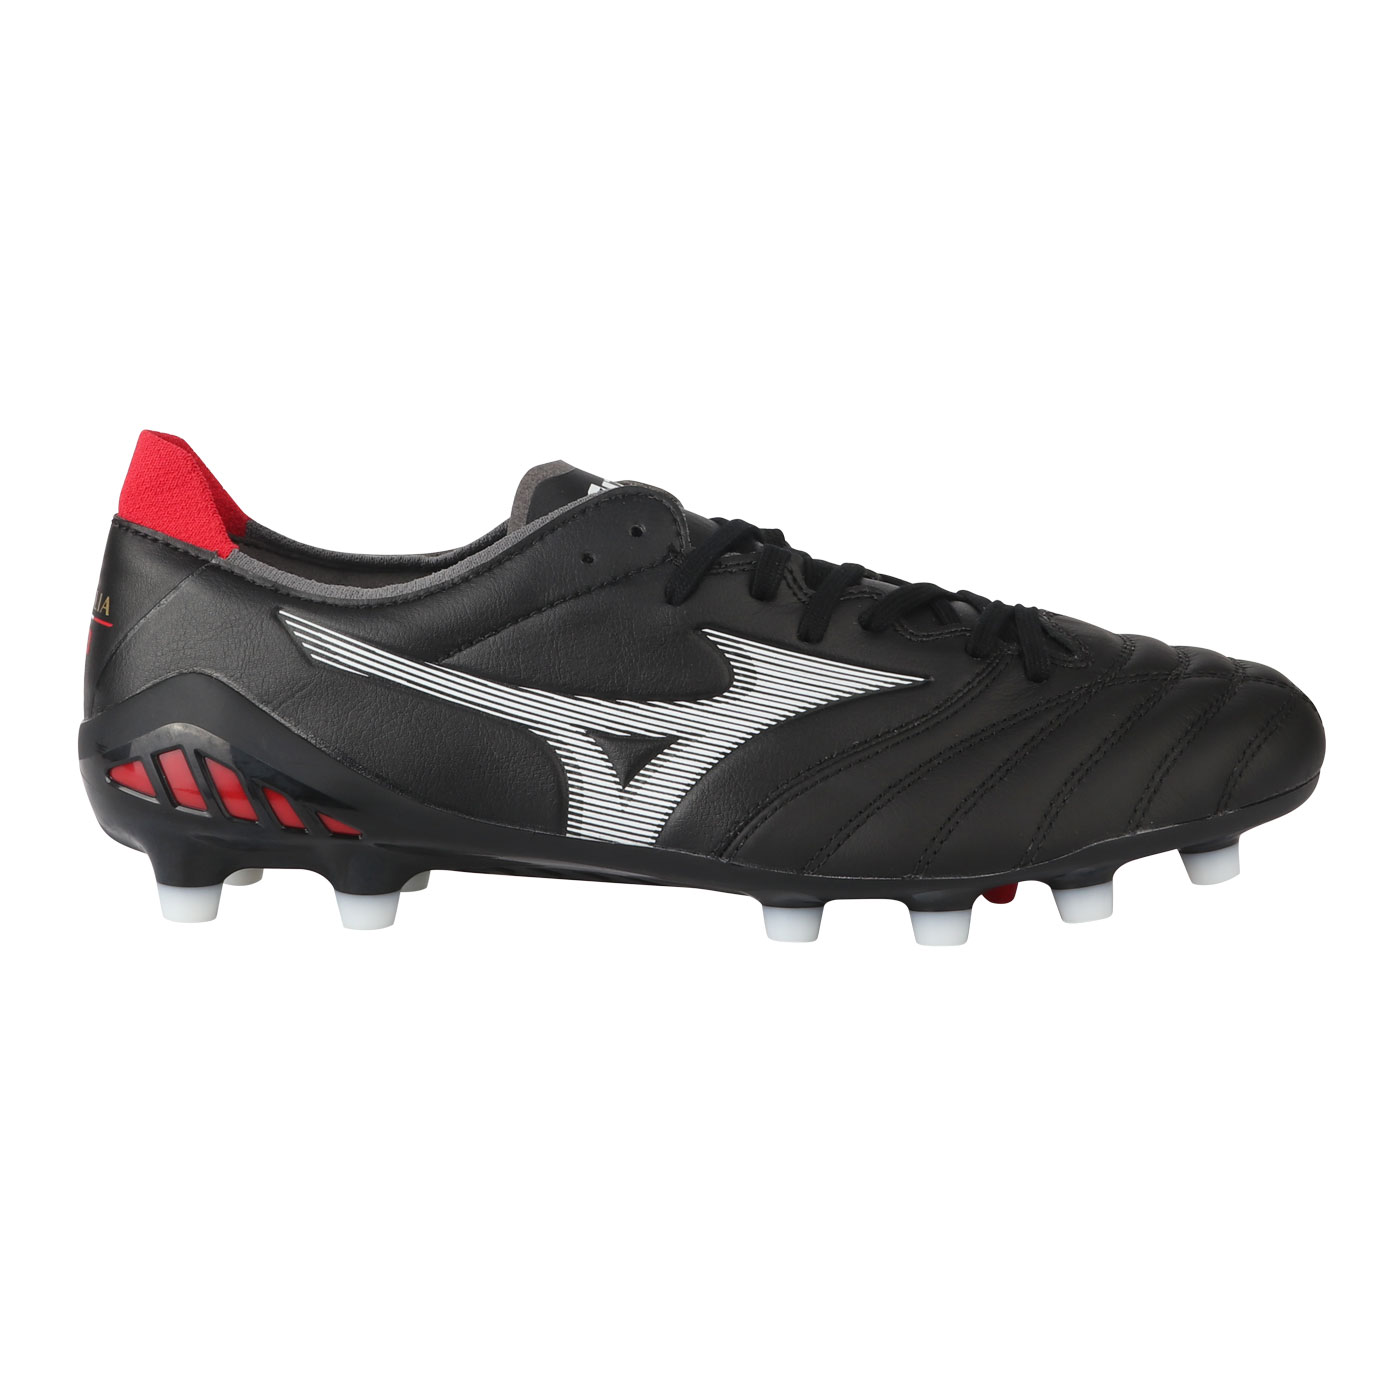 MORELIA NEO III ELITE-BLACK/WHITE/CHINESE RED